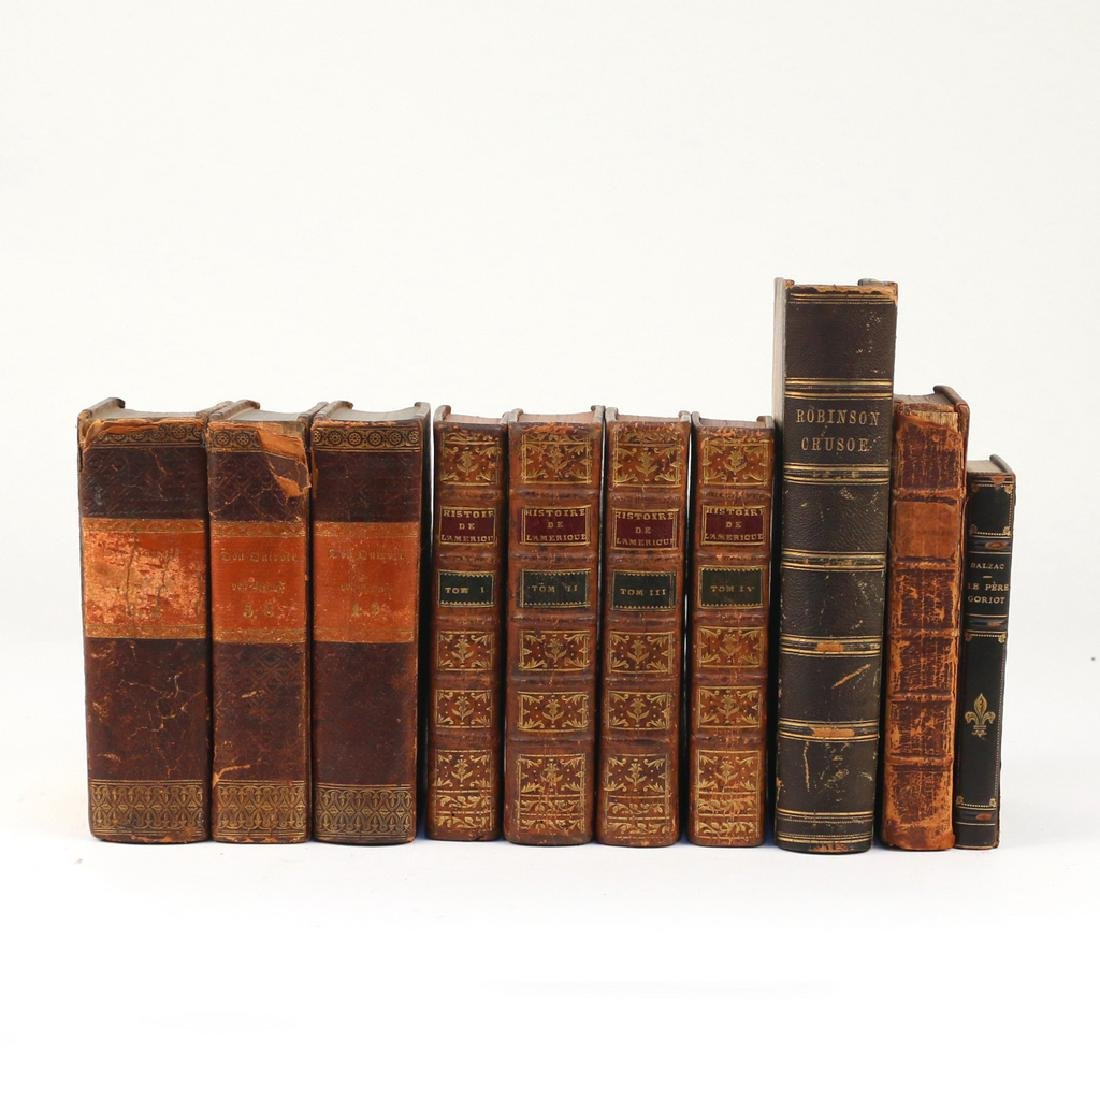 (10vol) [MISC. EARLY FRENCH & GERMAN LANGUAGE]